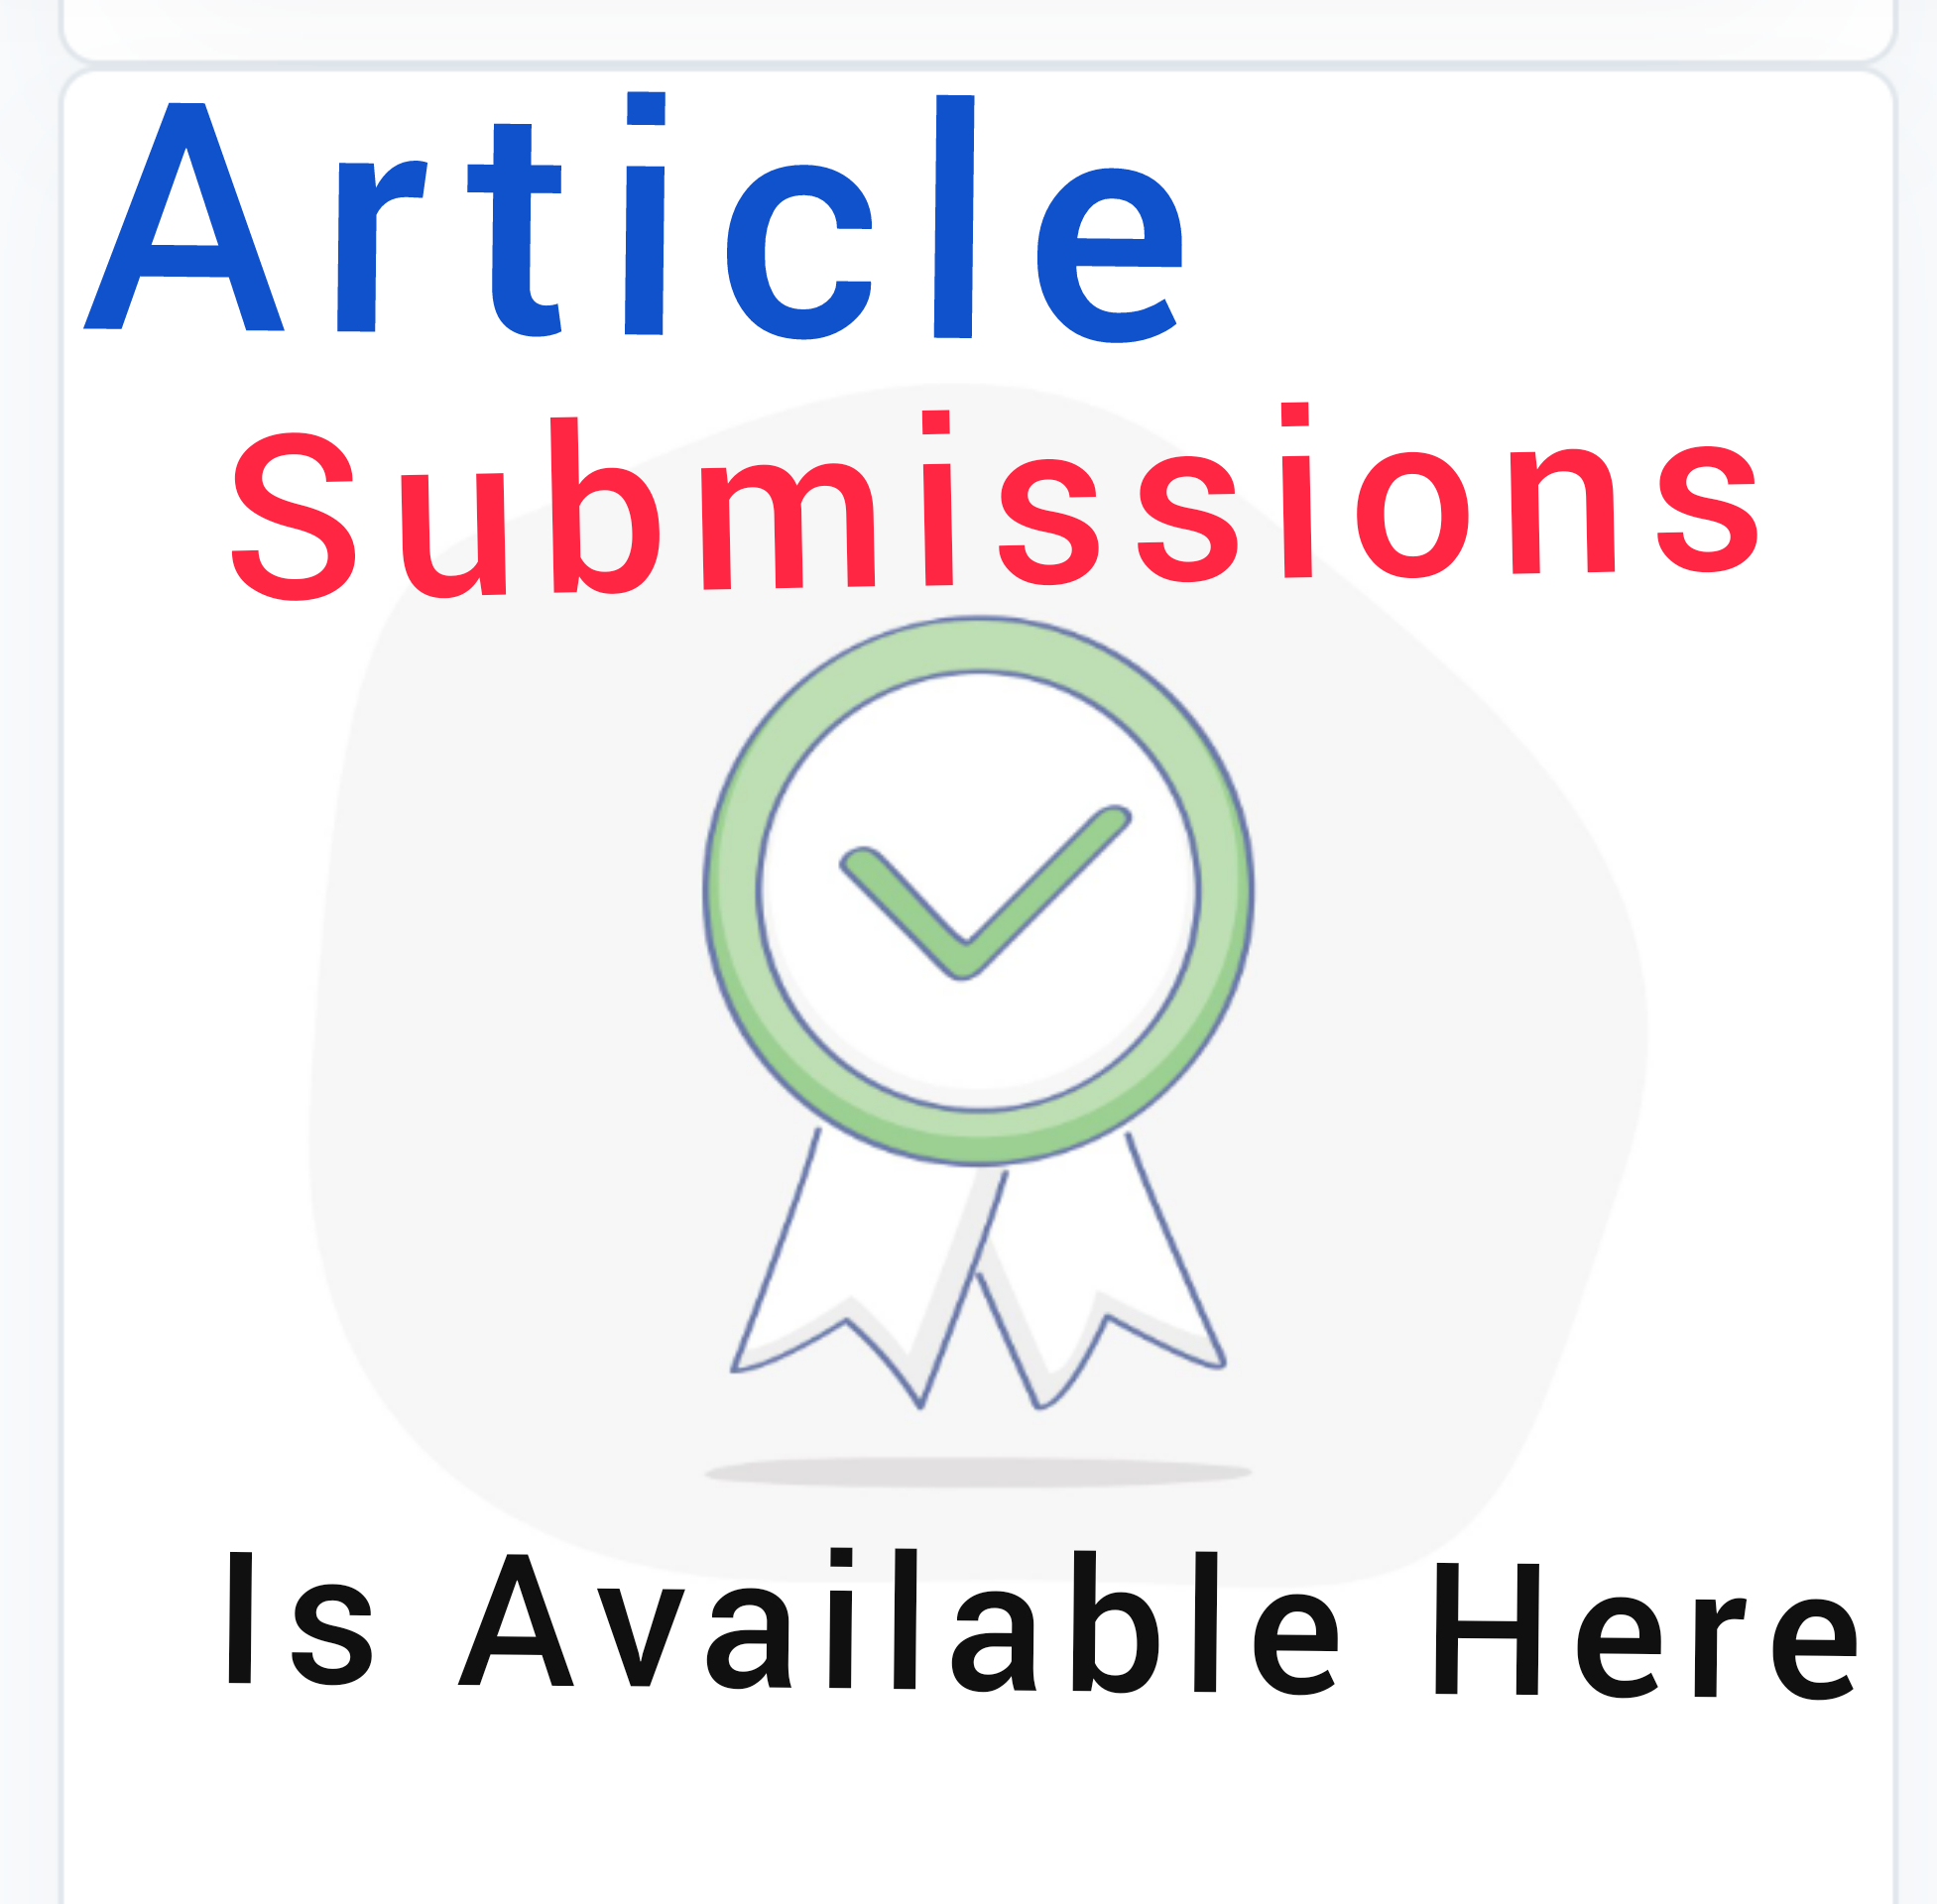 100 Articles SUBMISSION To Popular Articles Directories -For Massive Traffic,  Sales and Leads